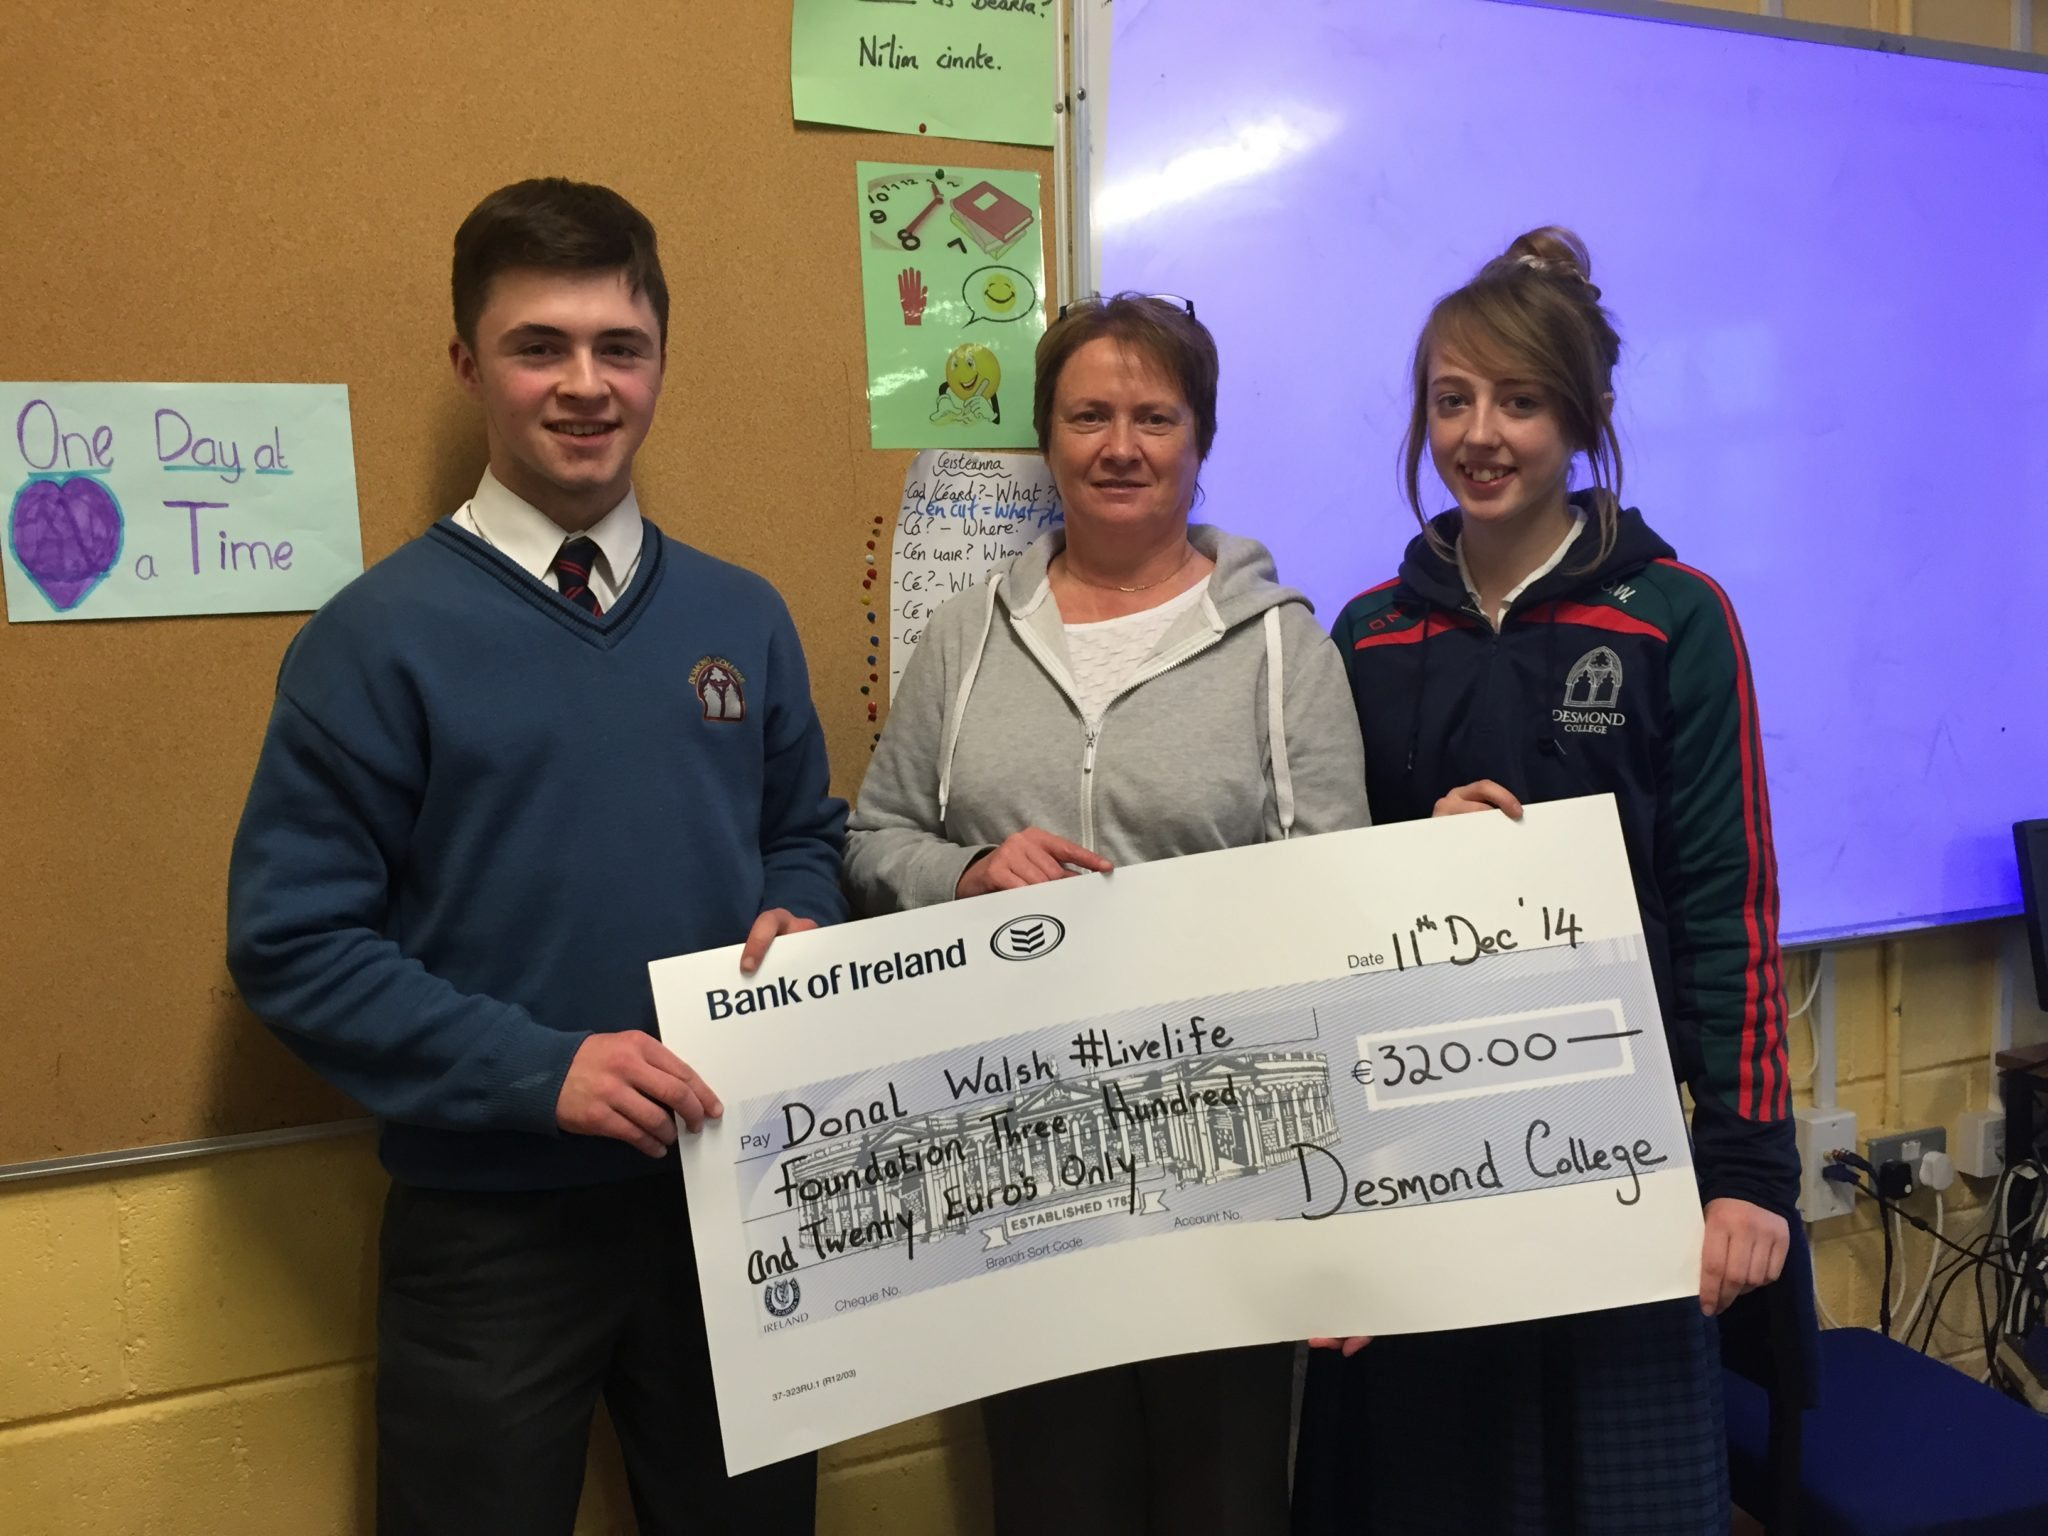 Elma Walsh of the #LiveLife Foundation gave a talk at Desmond College on 11th December 2014 where she was presented with a cheque for €320.00 that the Desmond College students raised